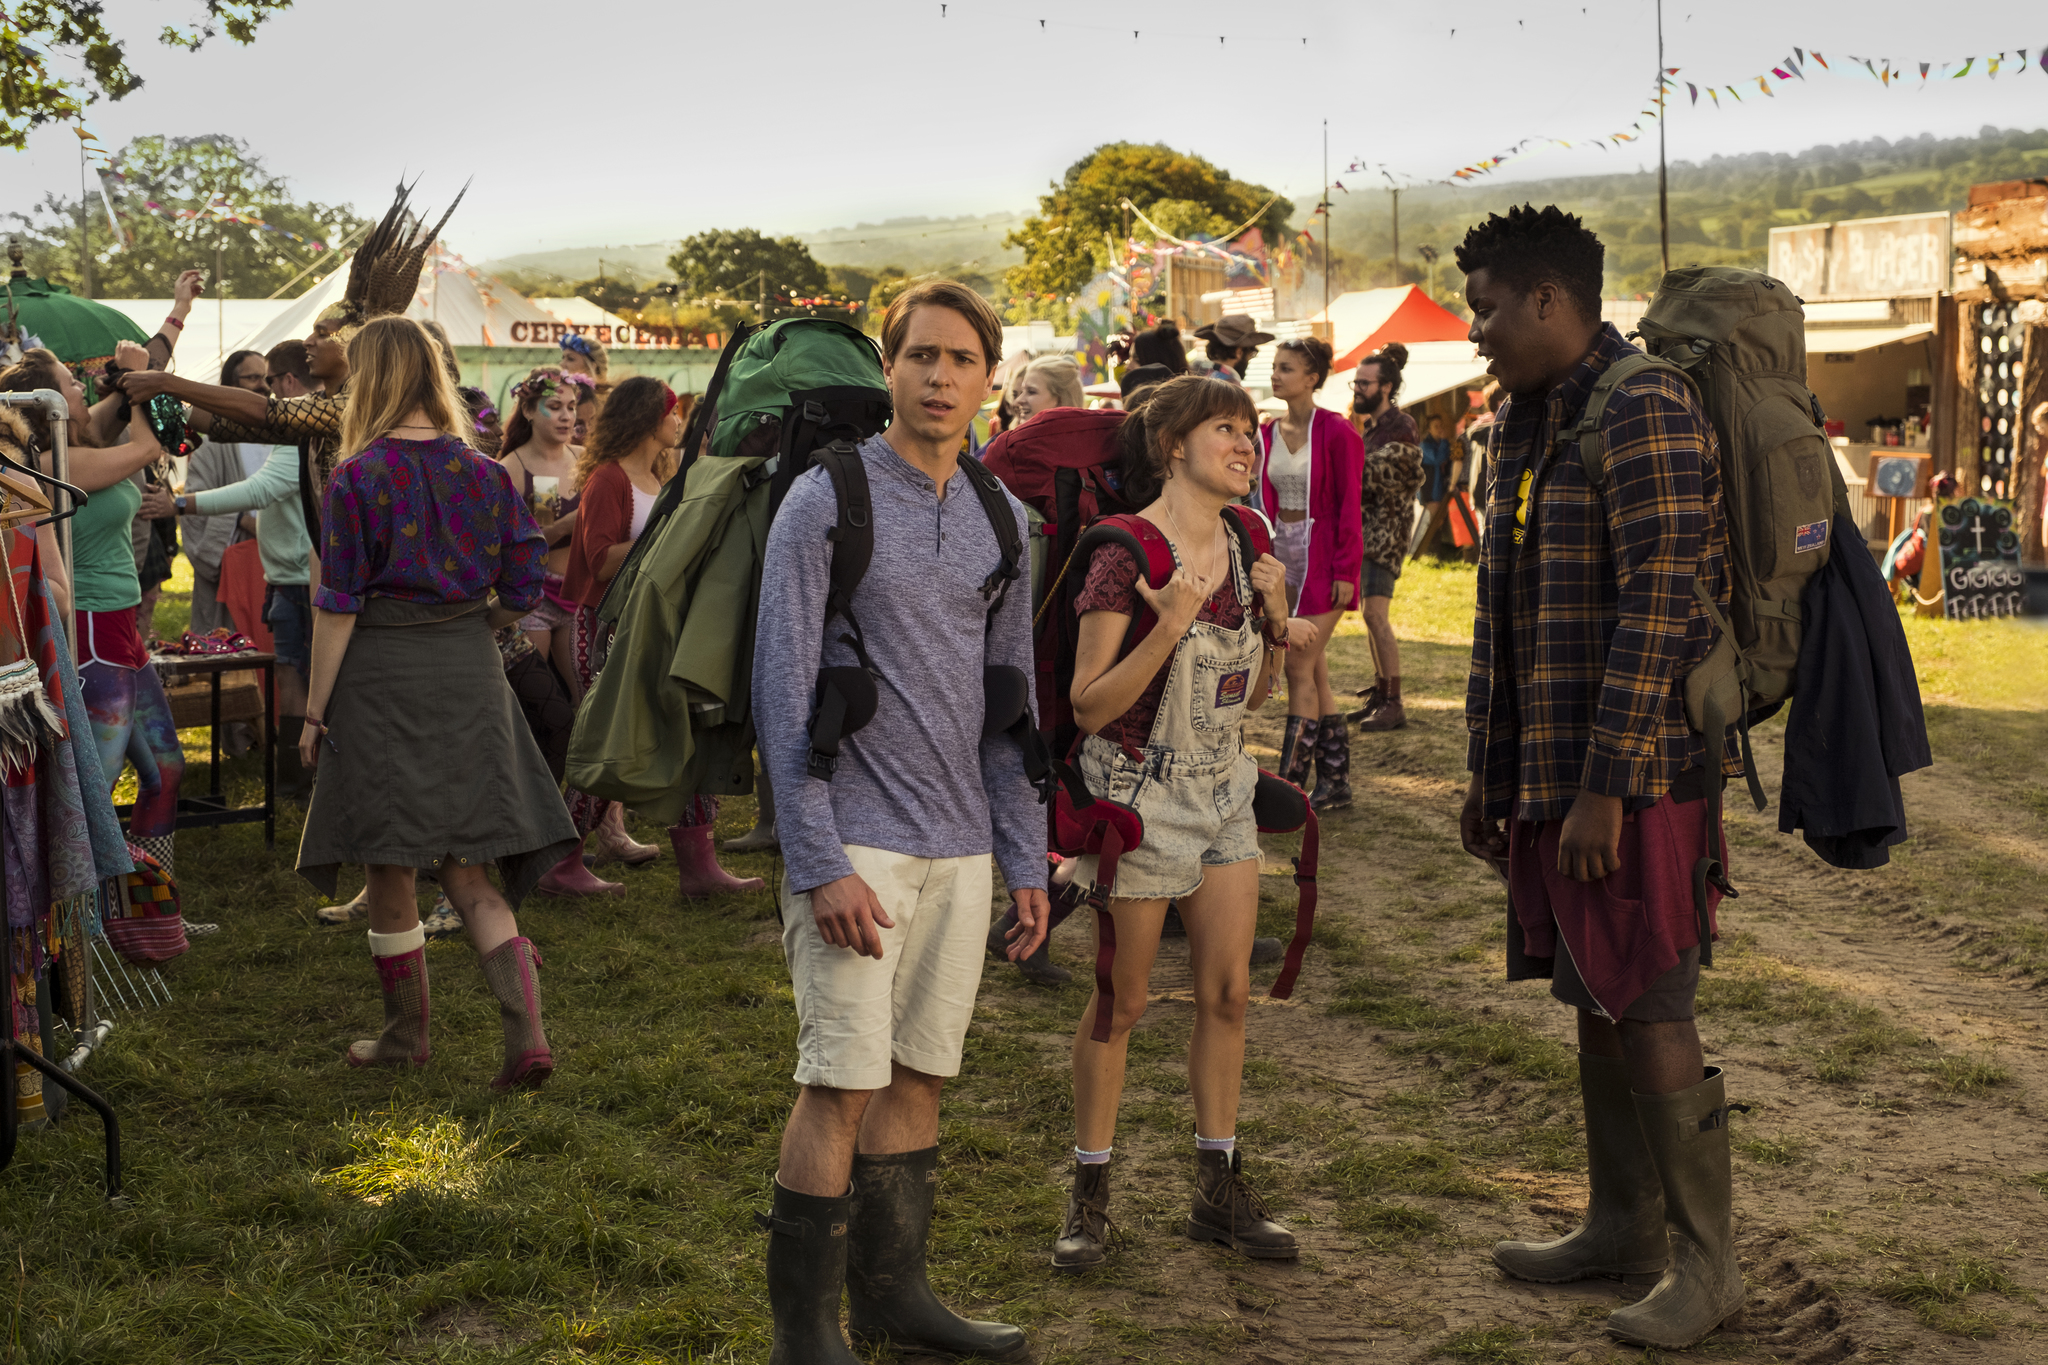 Joe Thomas, Hammed Animashaun, and Claudia O'Doherty in The Festival (2018)